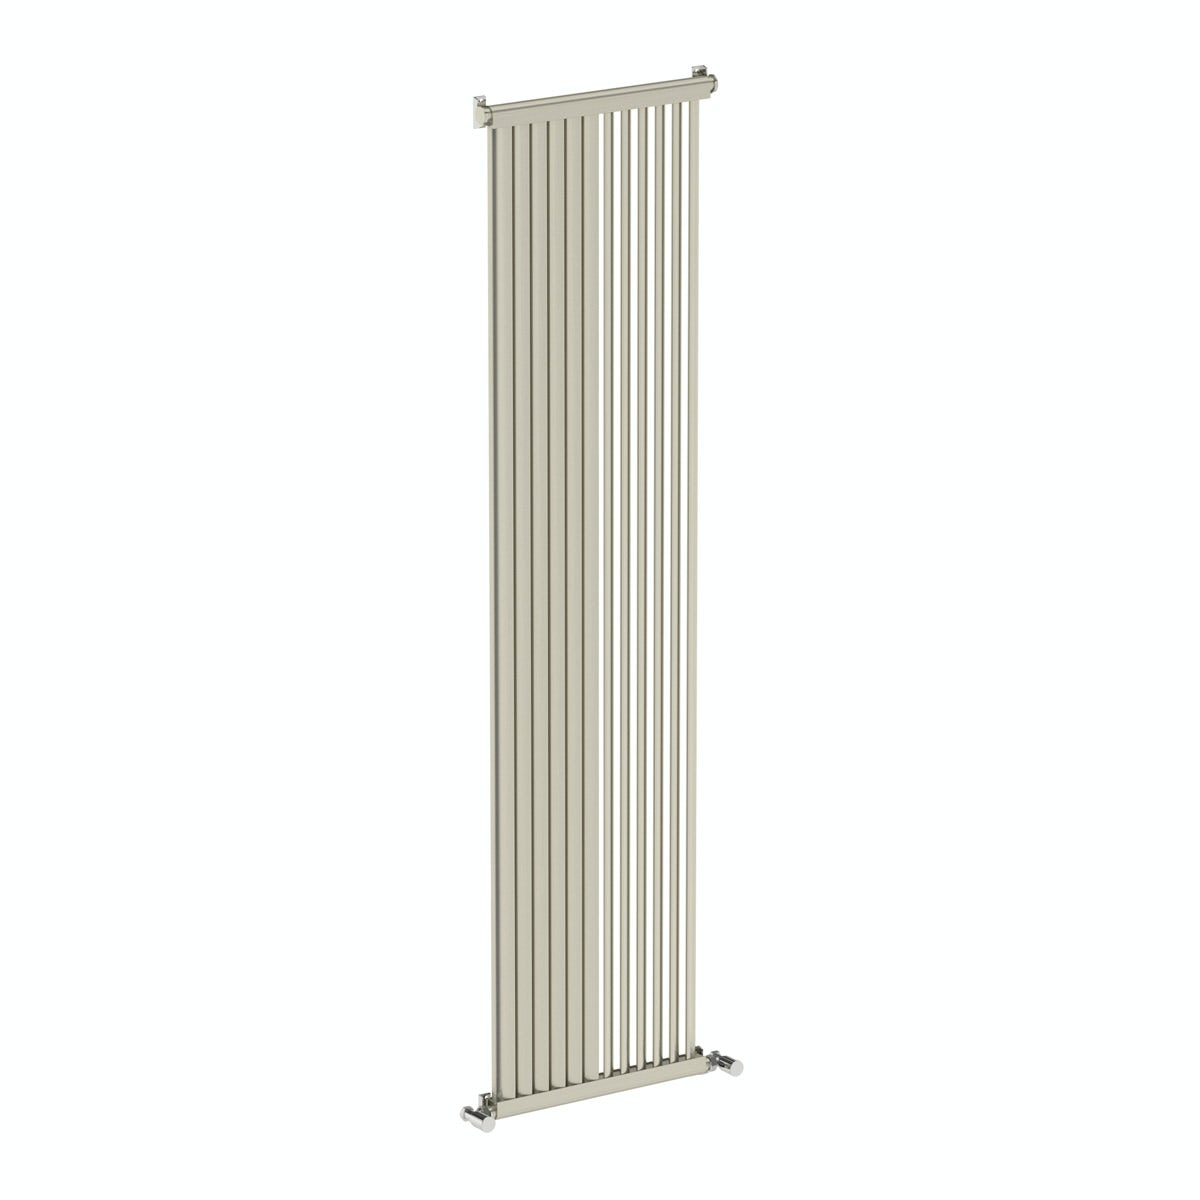 Mode Zephyra vertical radiator 1800 x 468